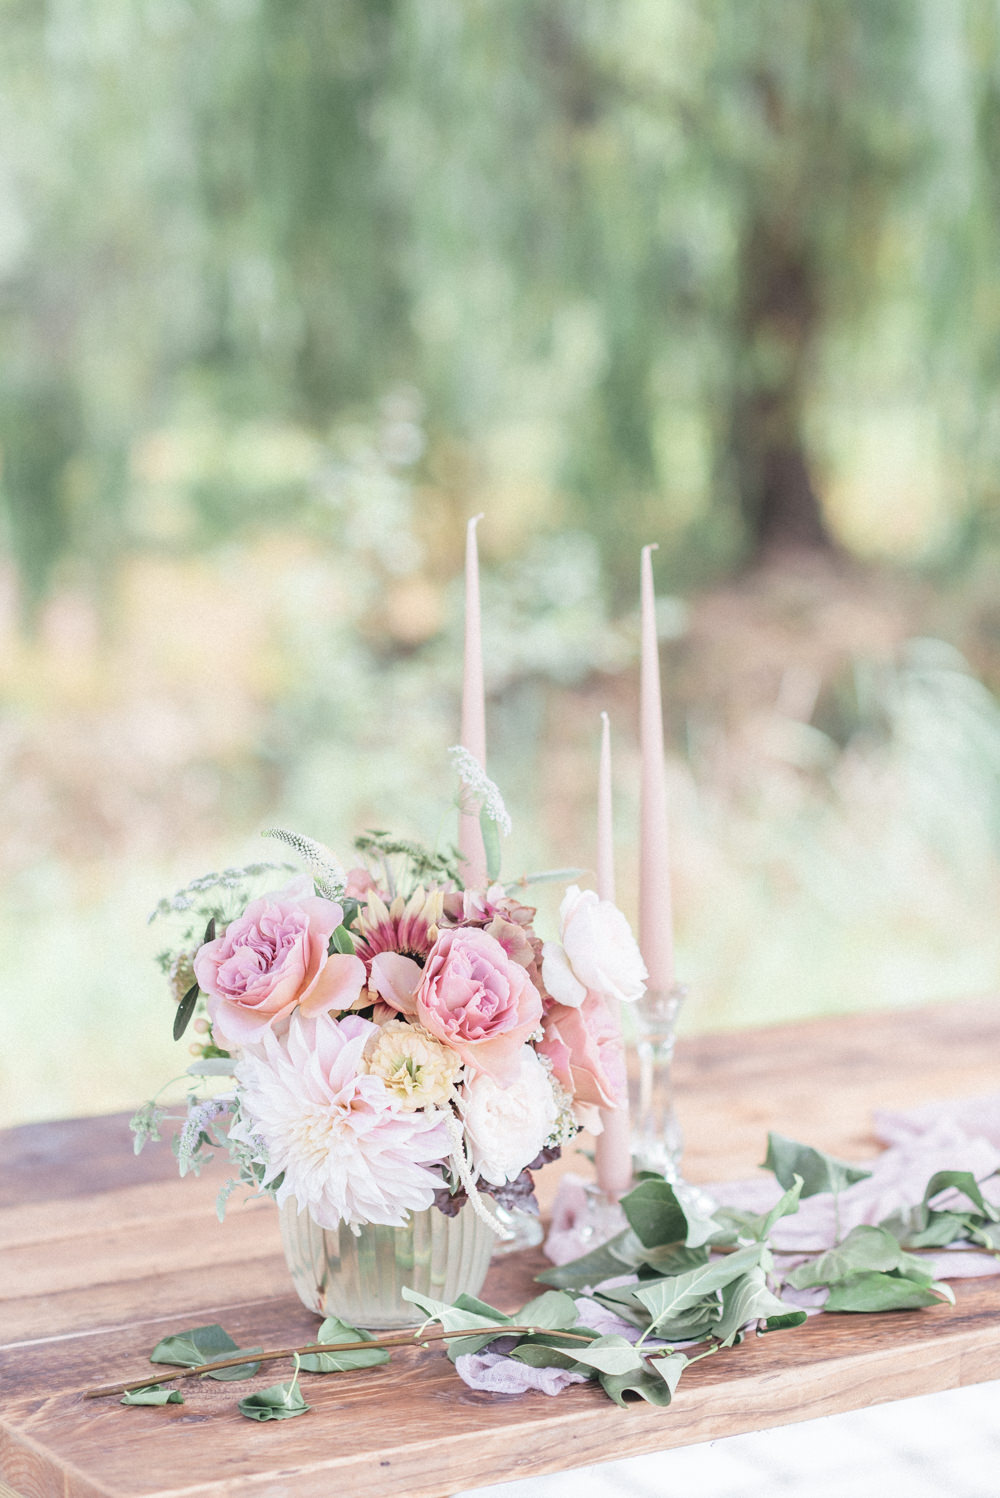 Ceremony Table Flowers Pink Dahlia UK Destination Wedding Hannah McClune Photography